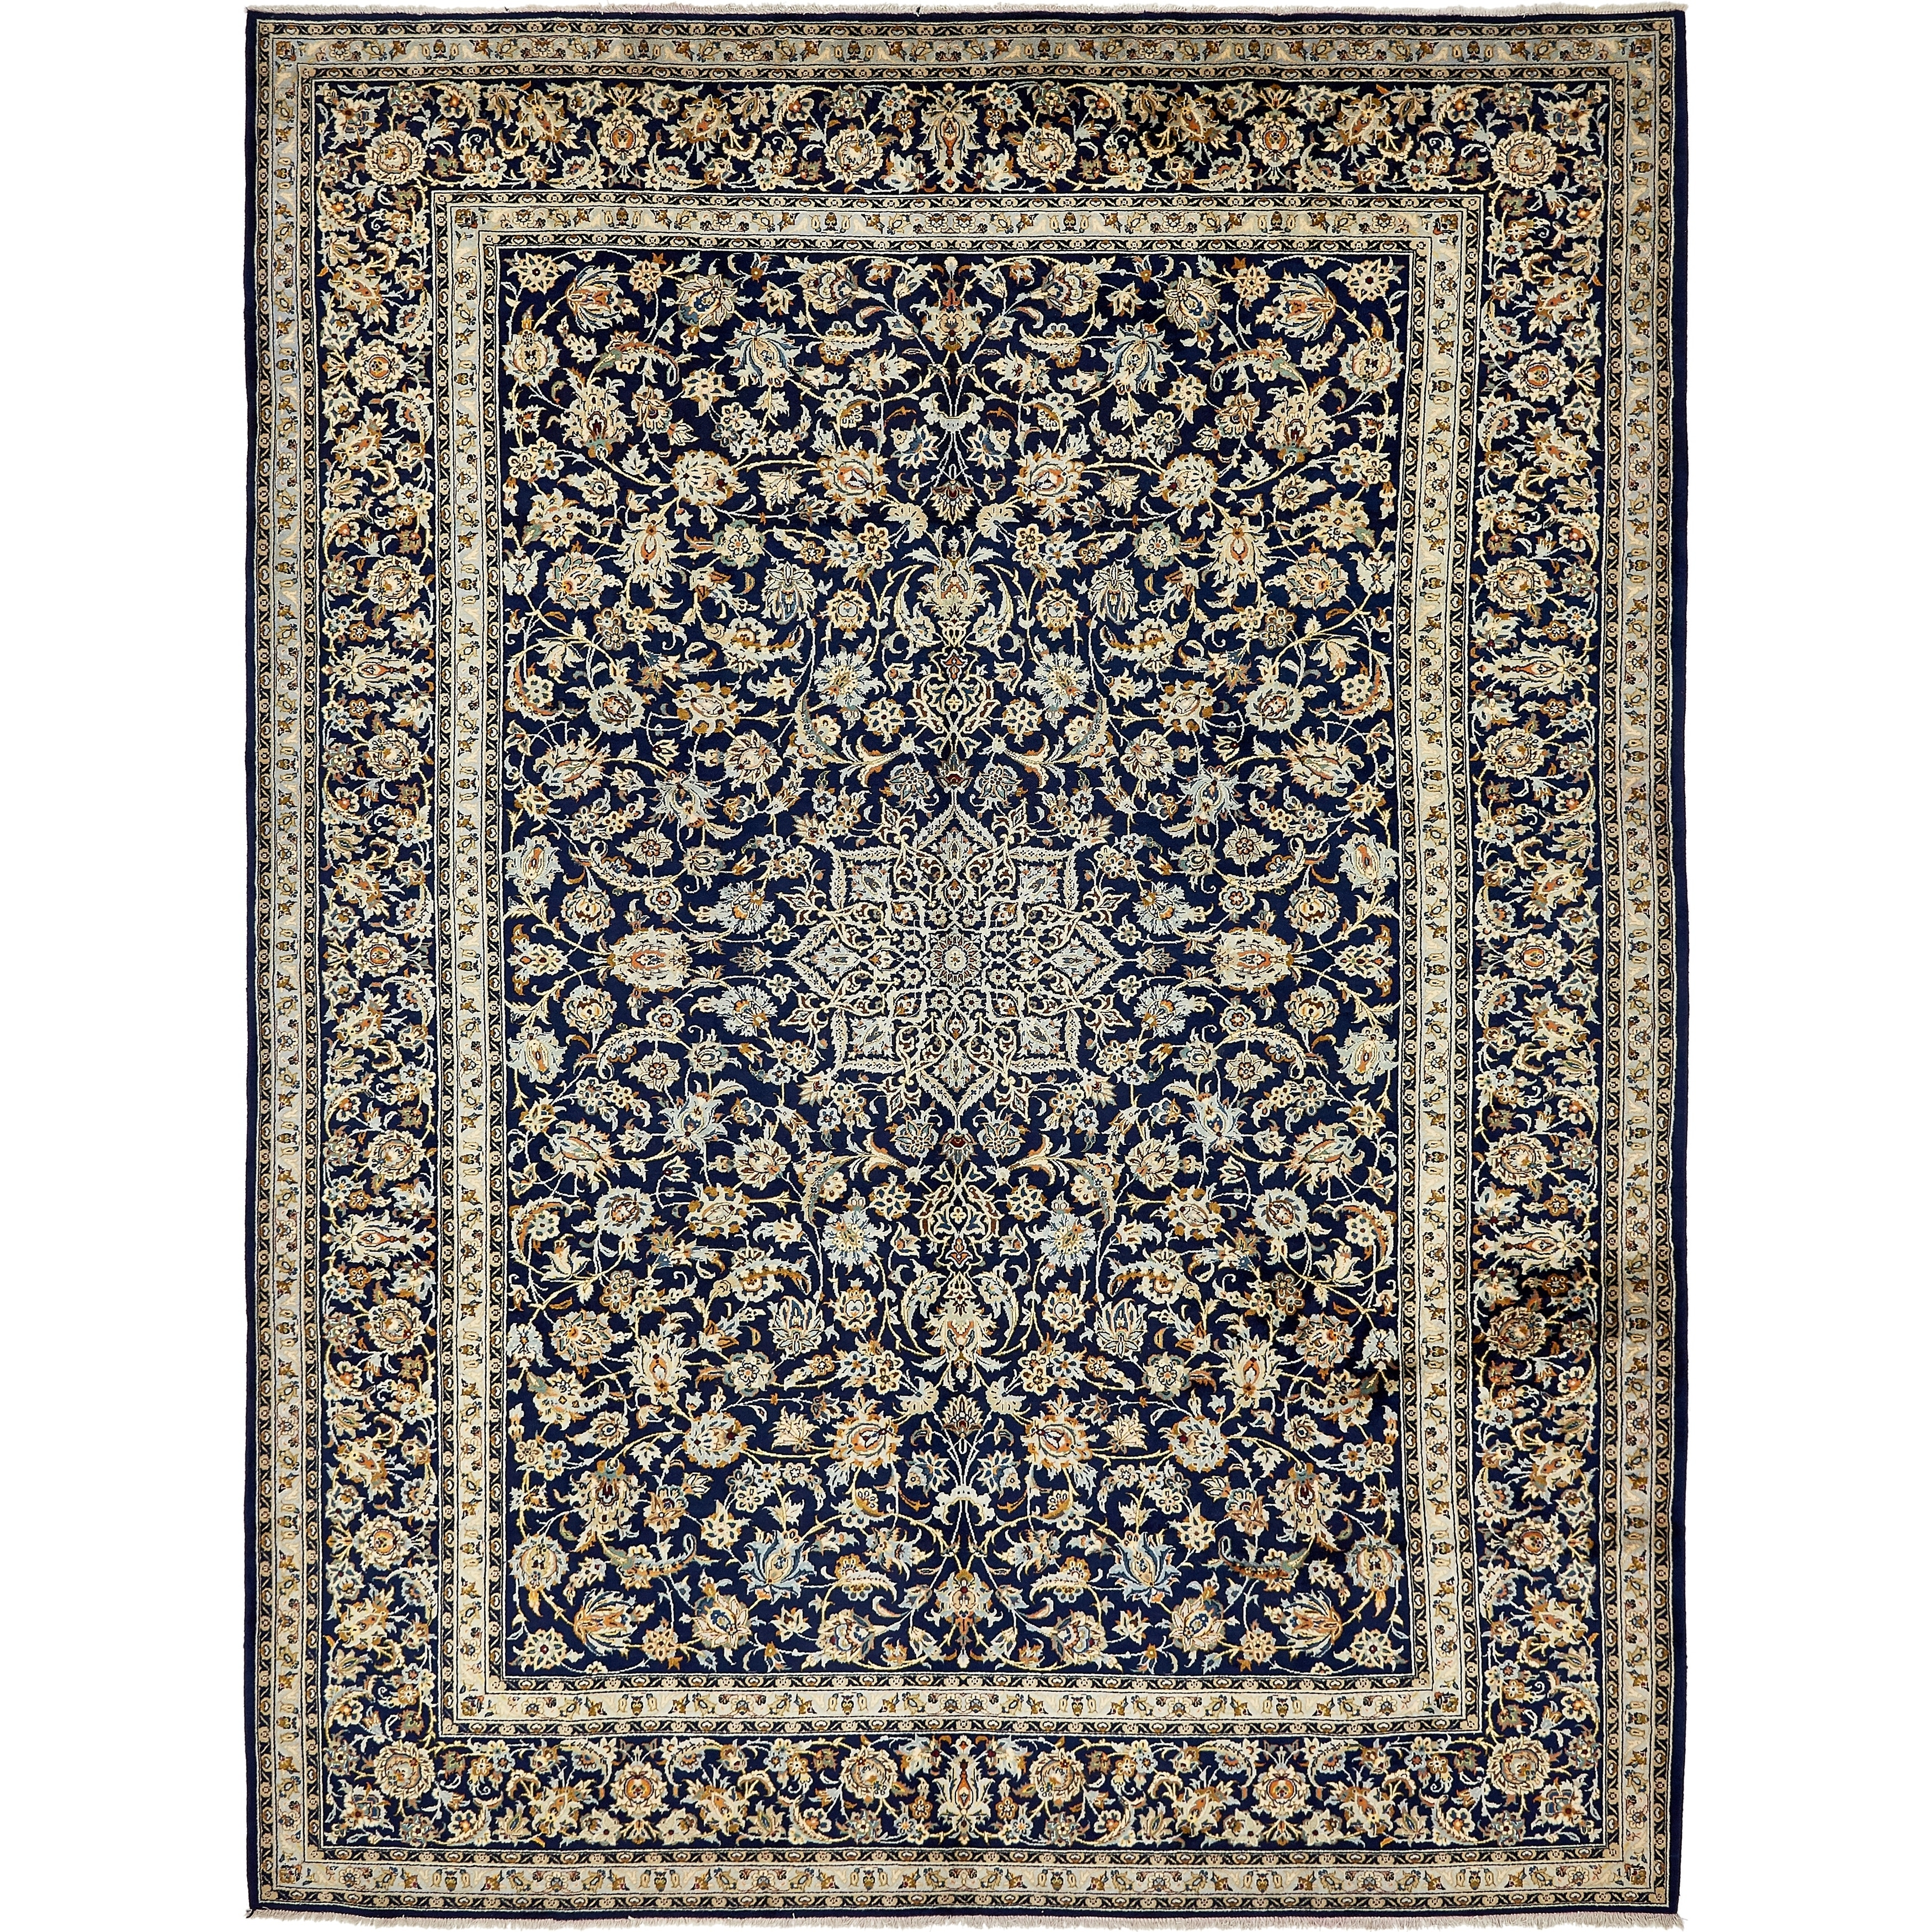 Hand Knotted Kashan Semi Antique Wool Area Rug - 10 x 13 5 (Navy blue - 10 x 13 5)